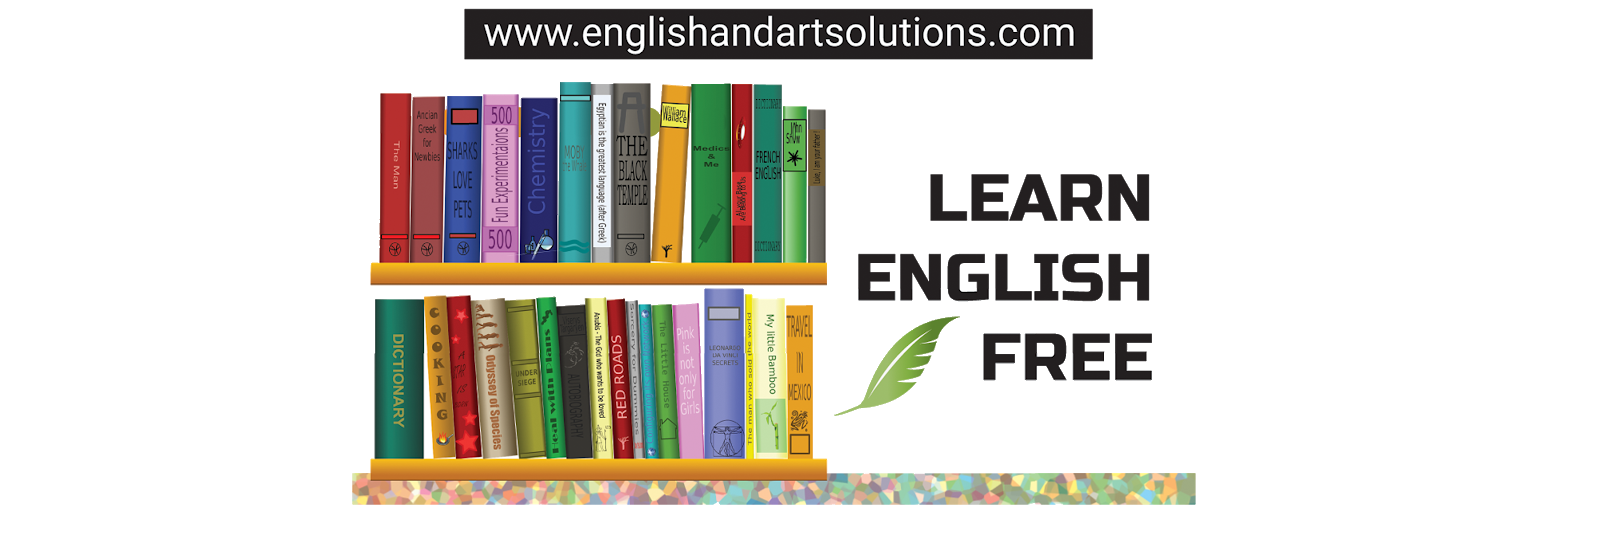 FREE ENGLISH RESOURCES